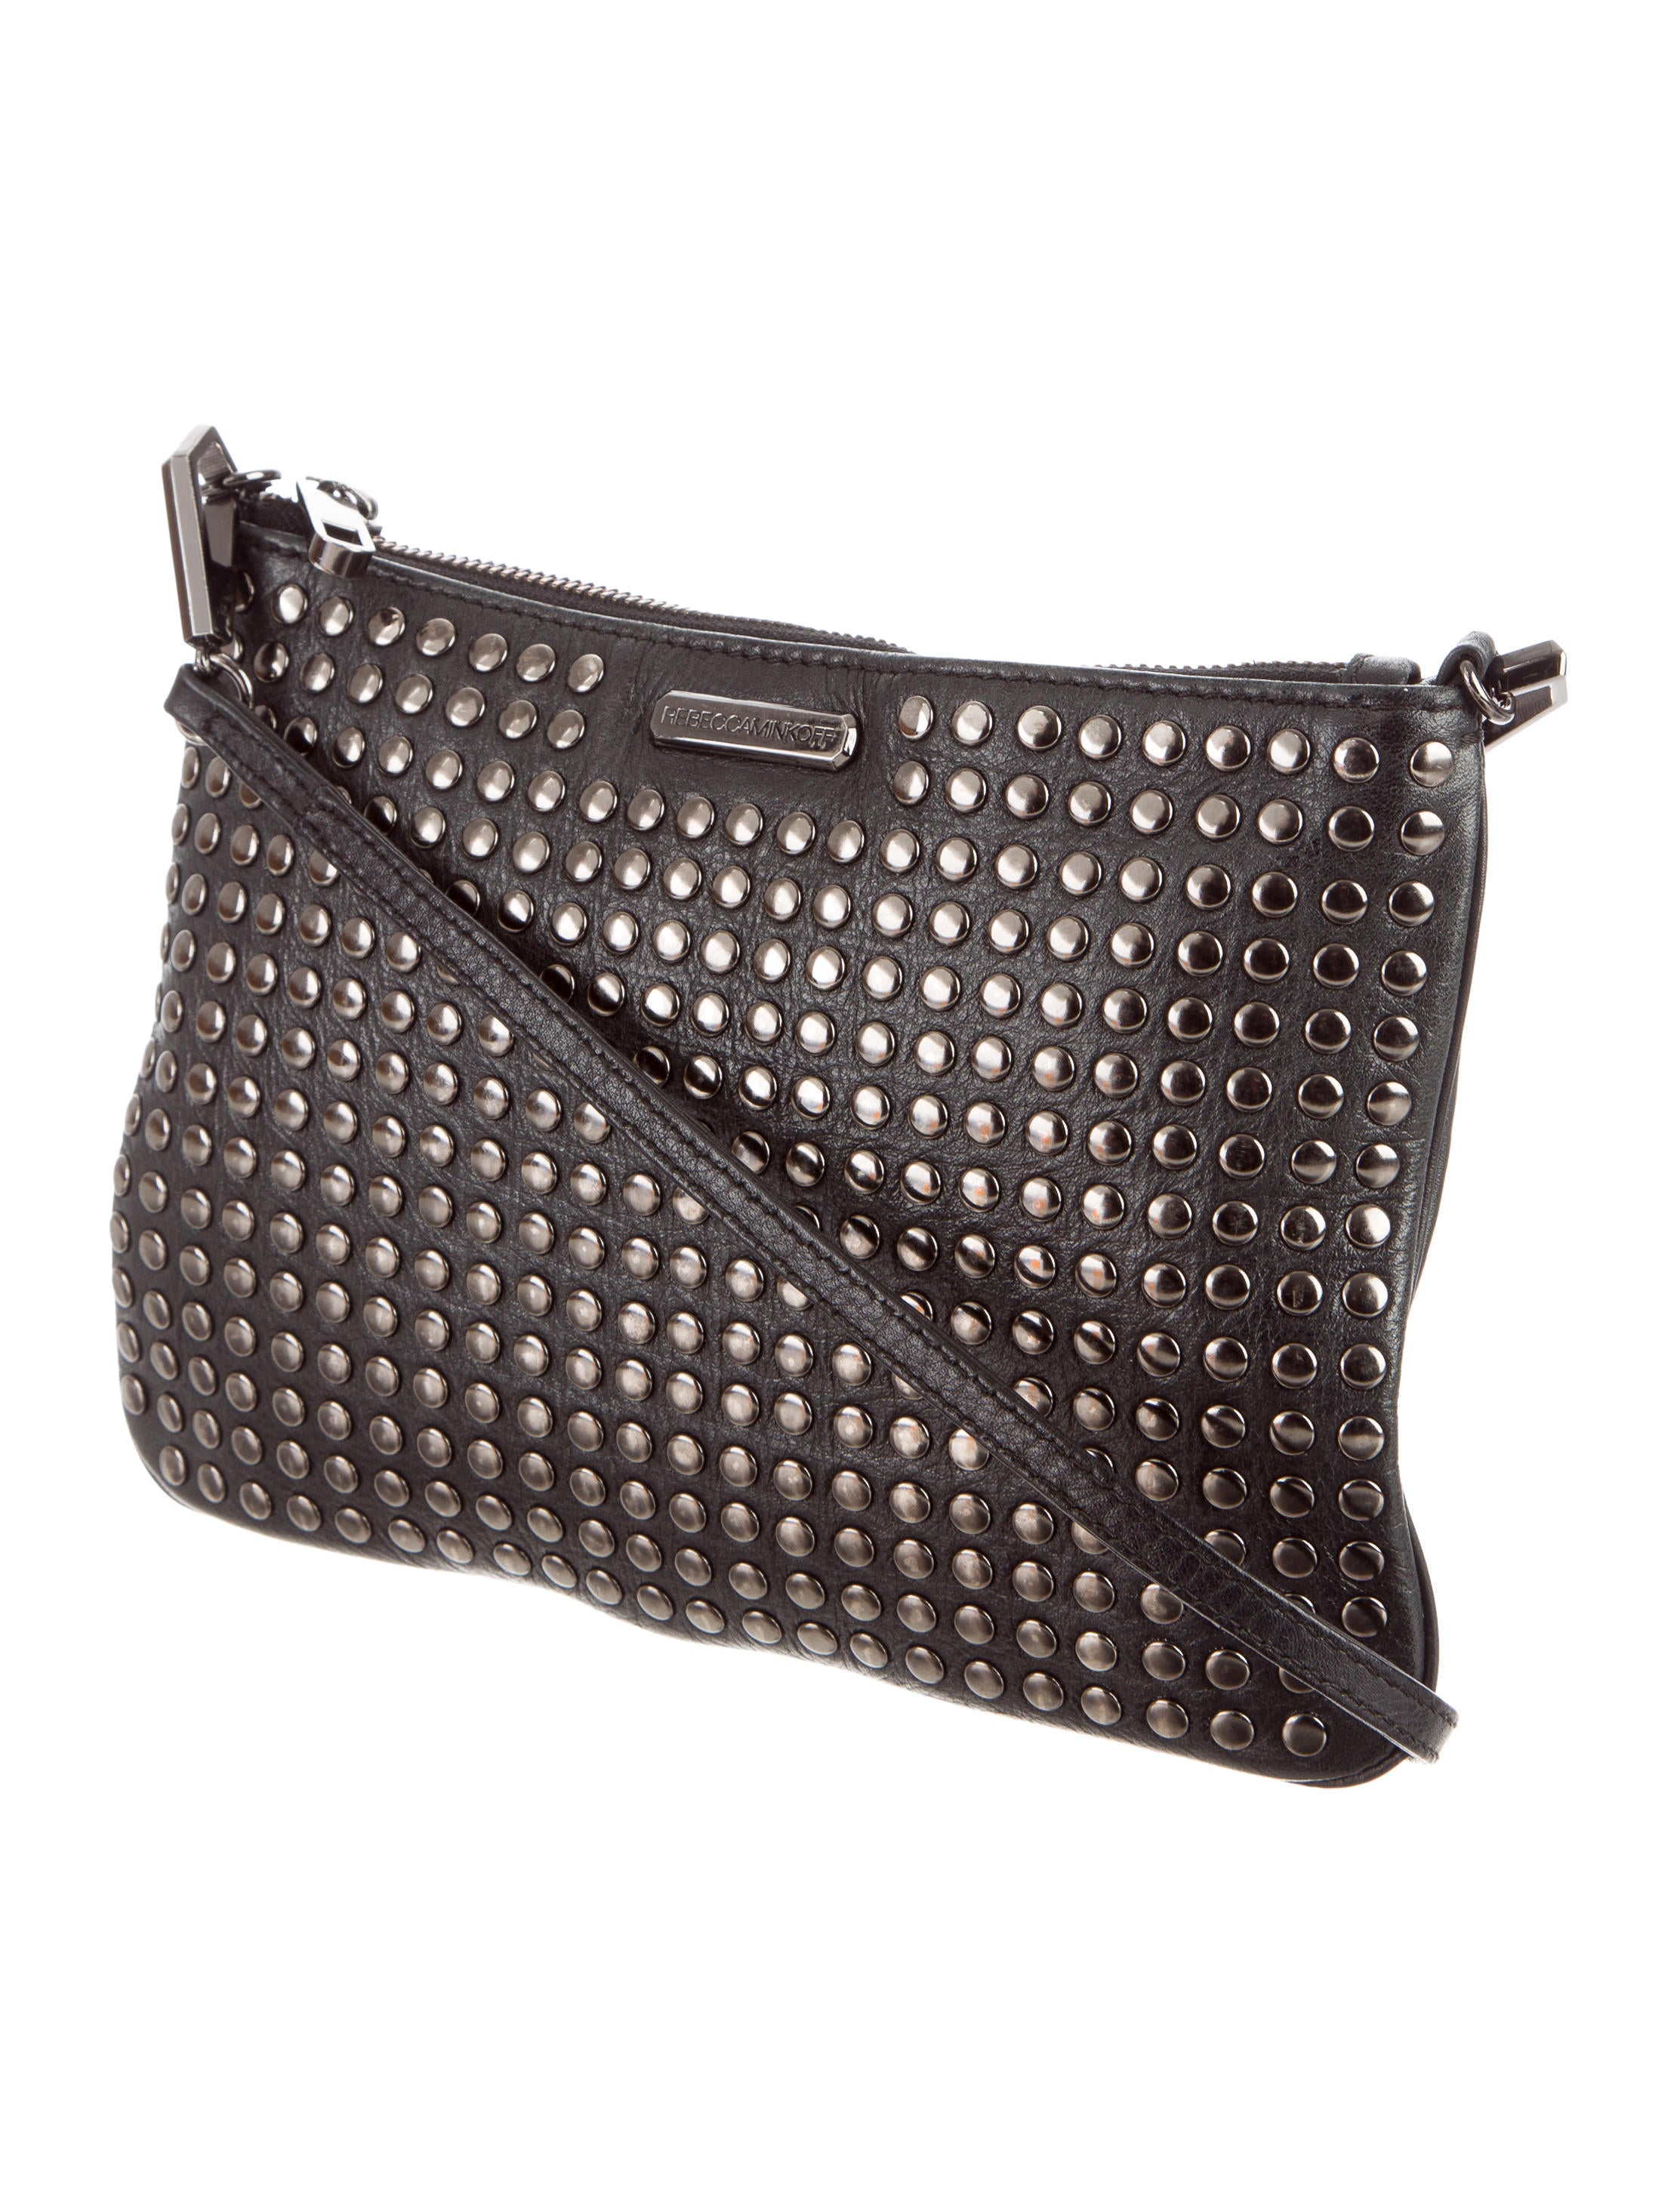 Contemporary Flatware Rebecca Minkoff Studded Crossbody Bag Handbags